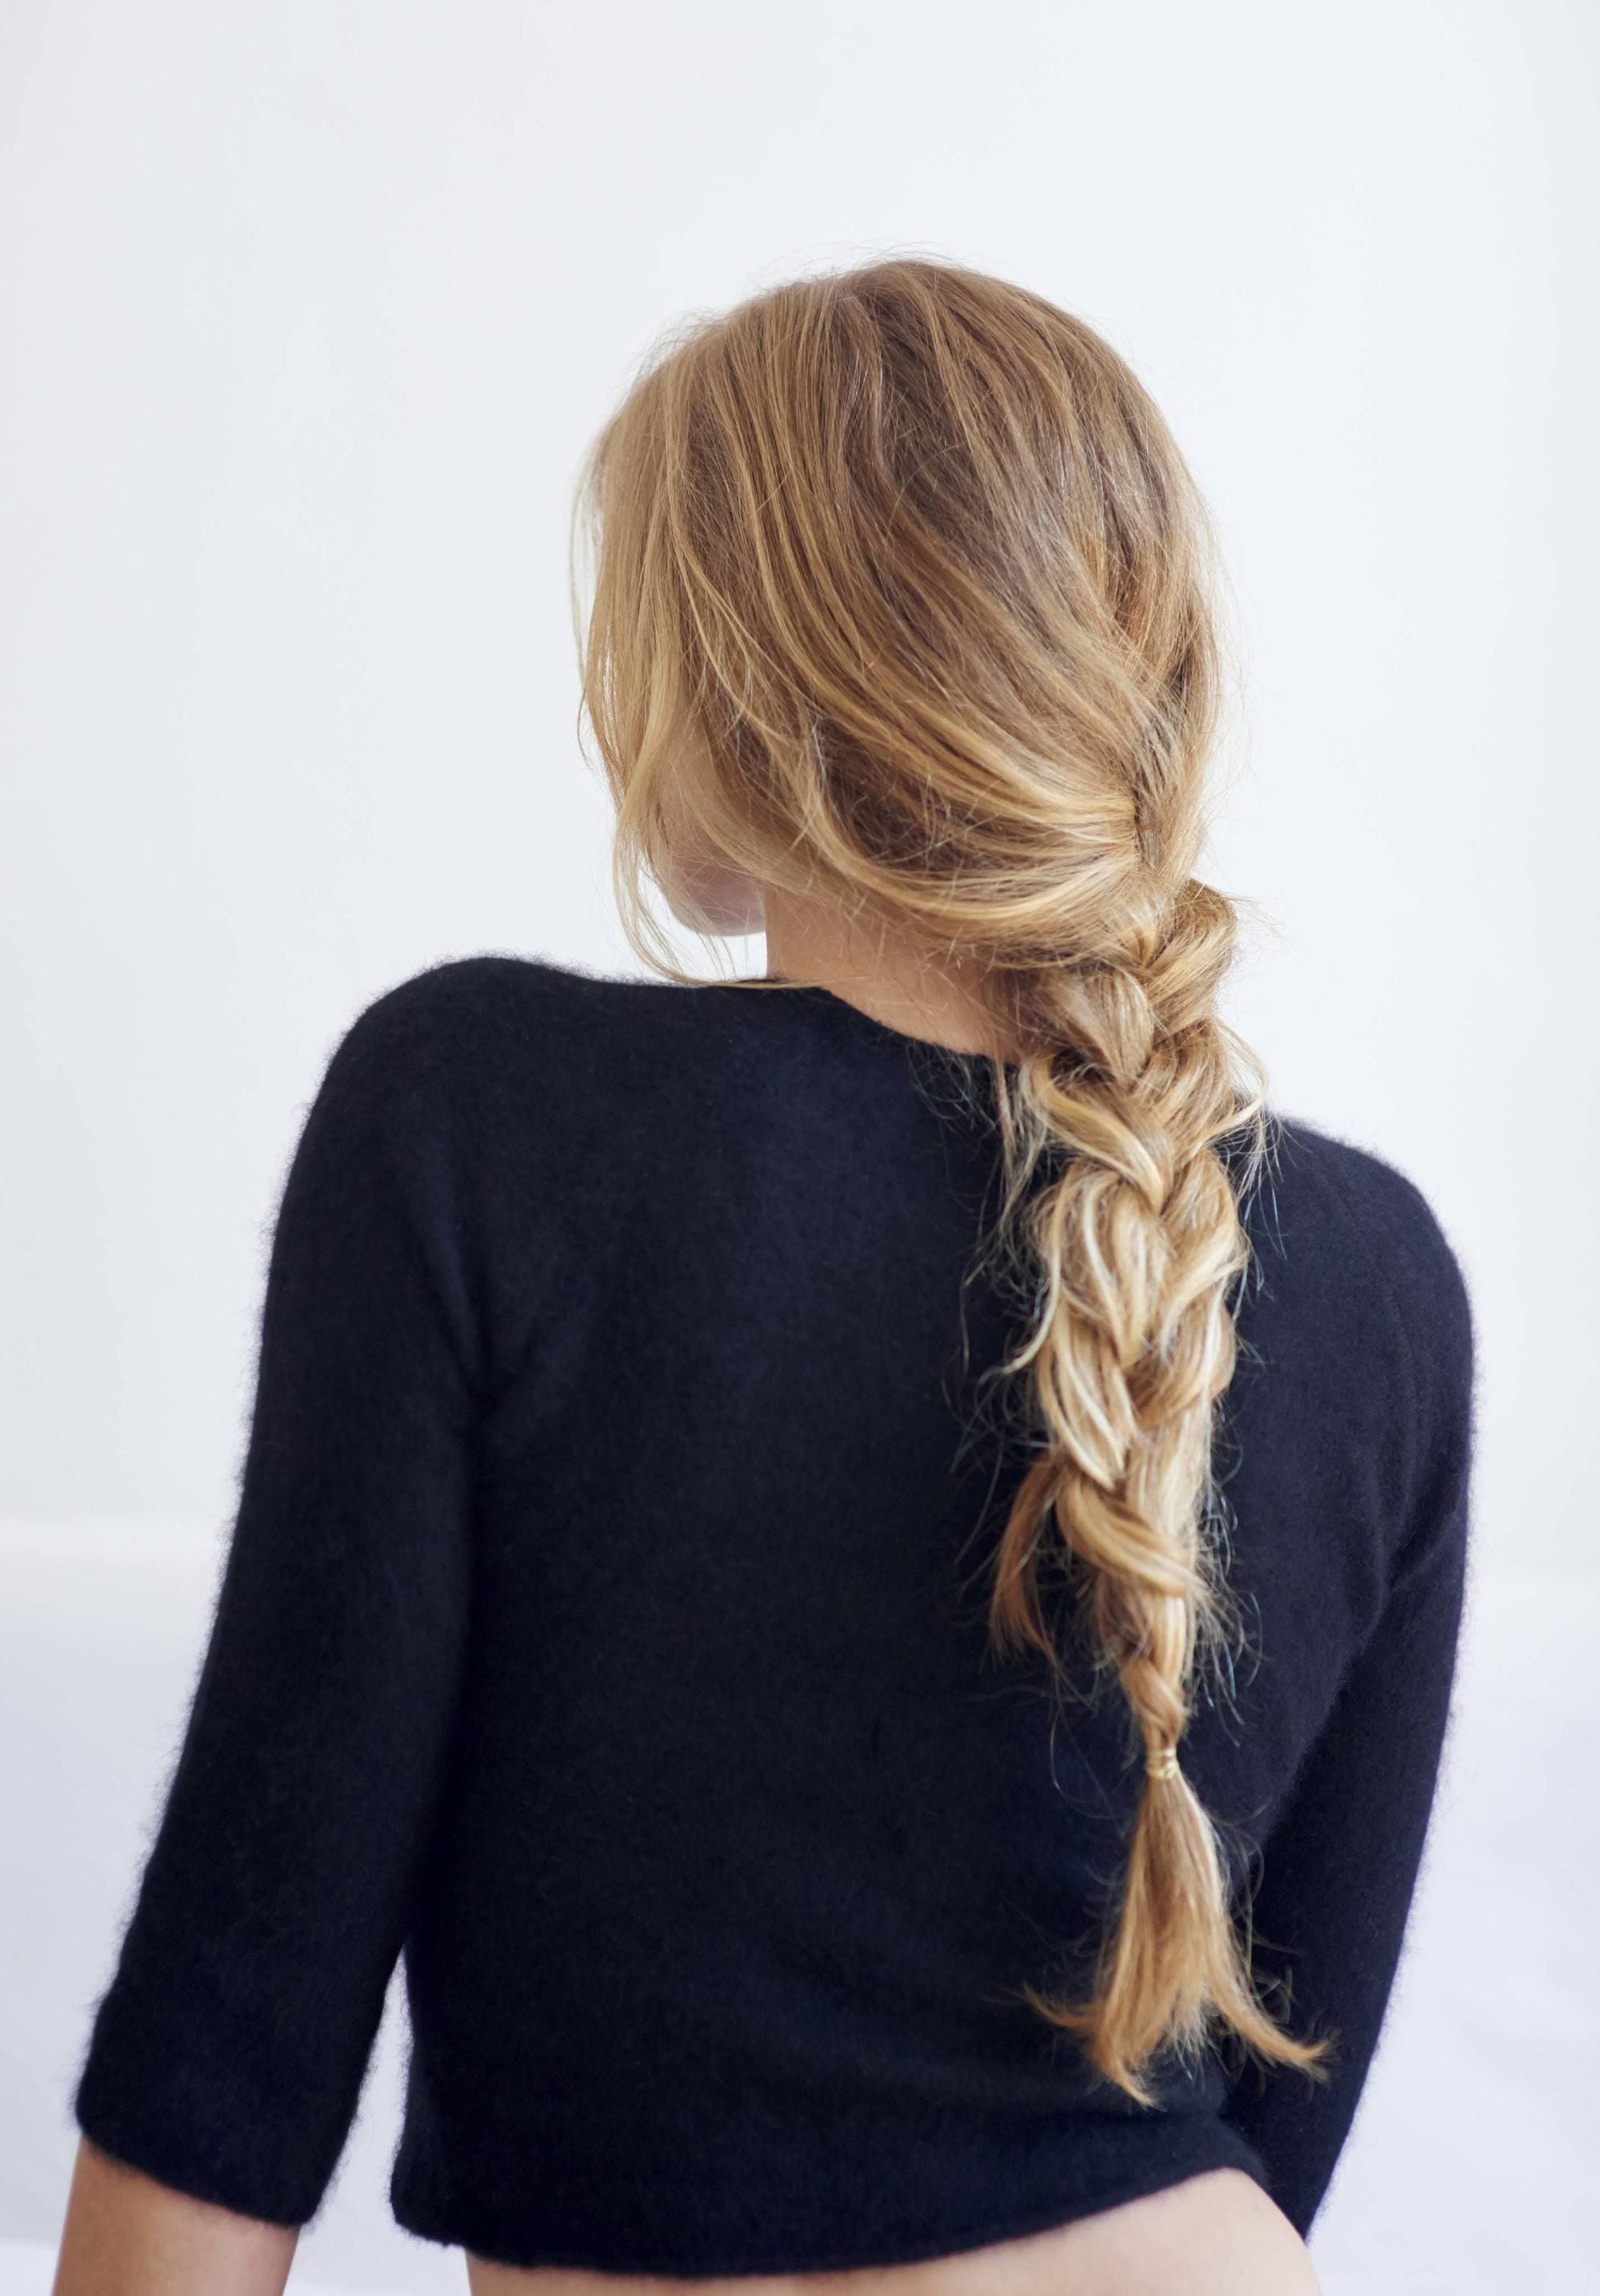 braid hairstyles 2016 with the loose braid